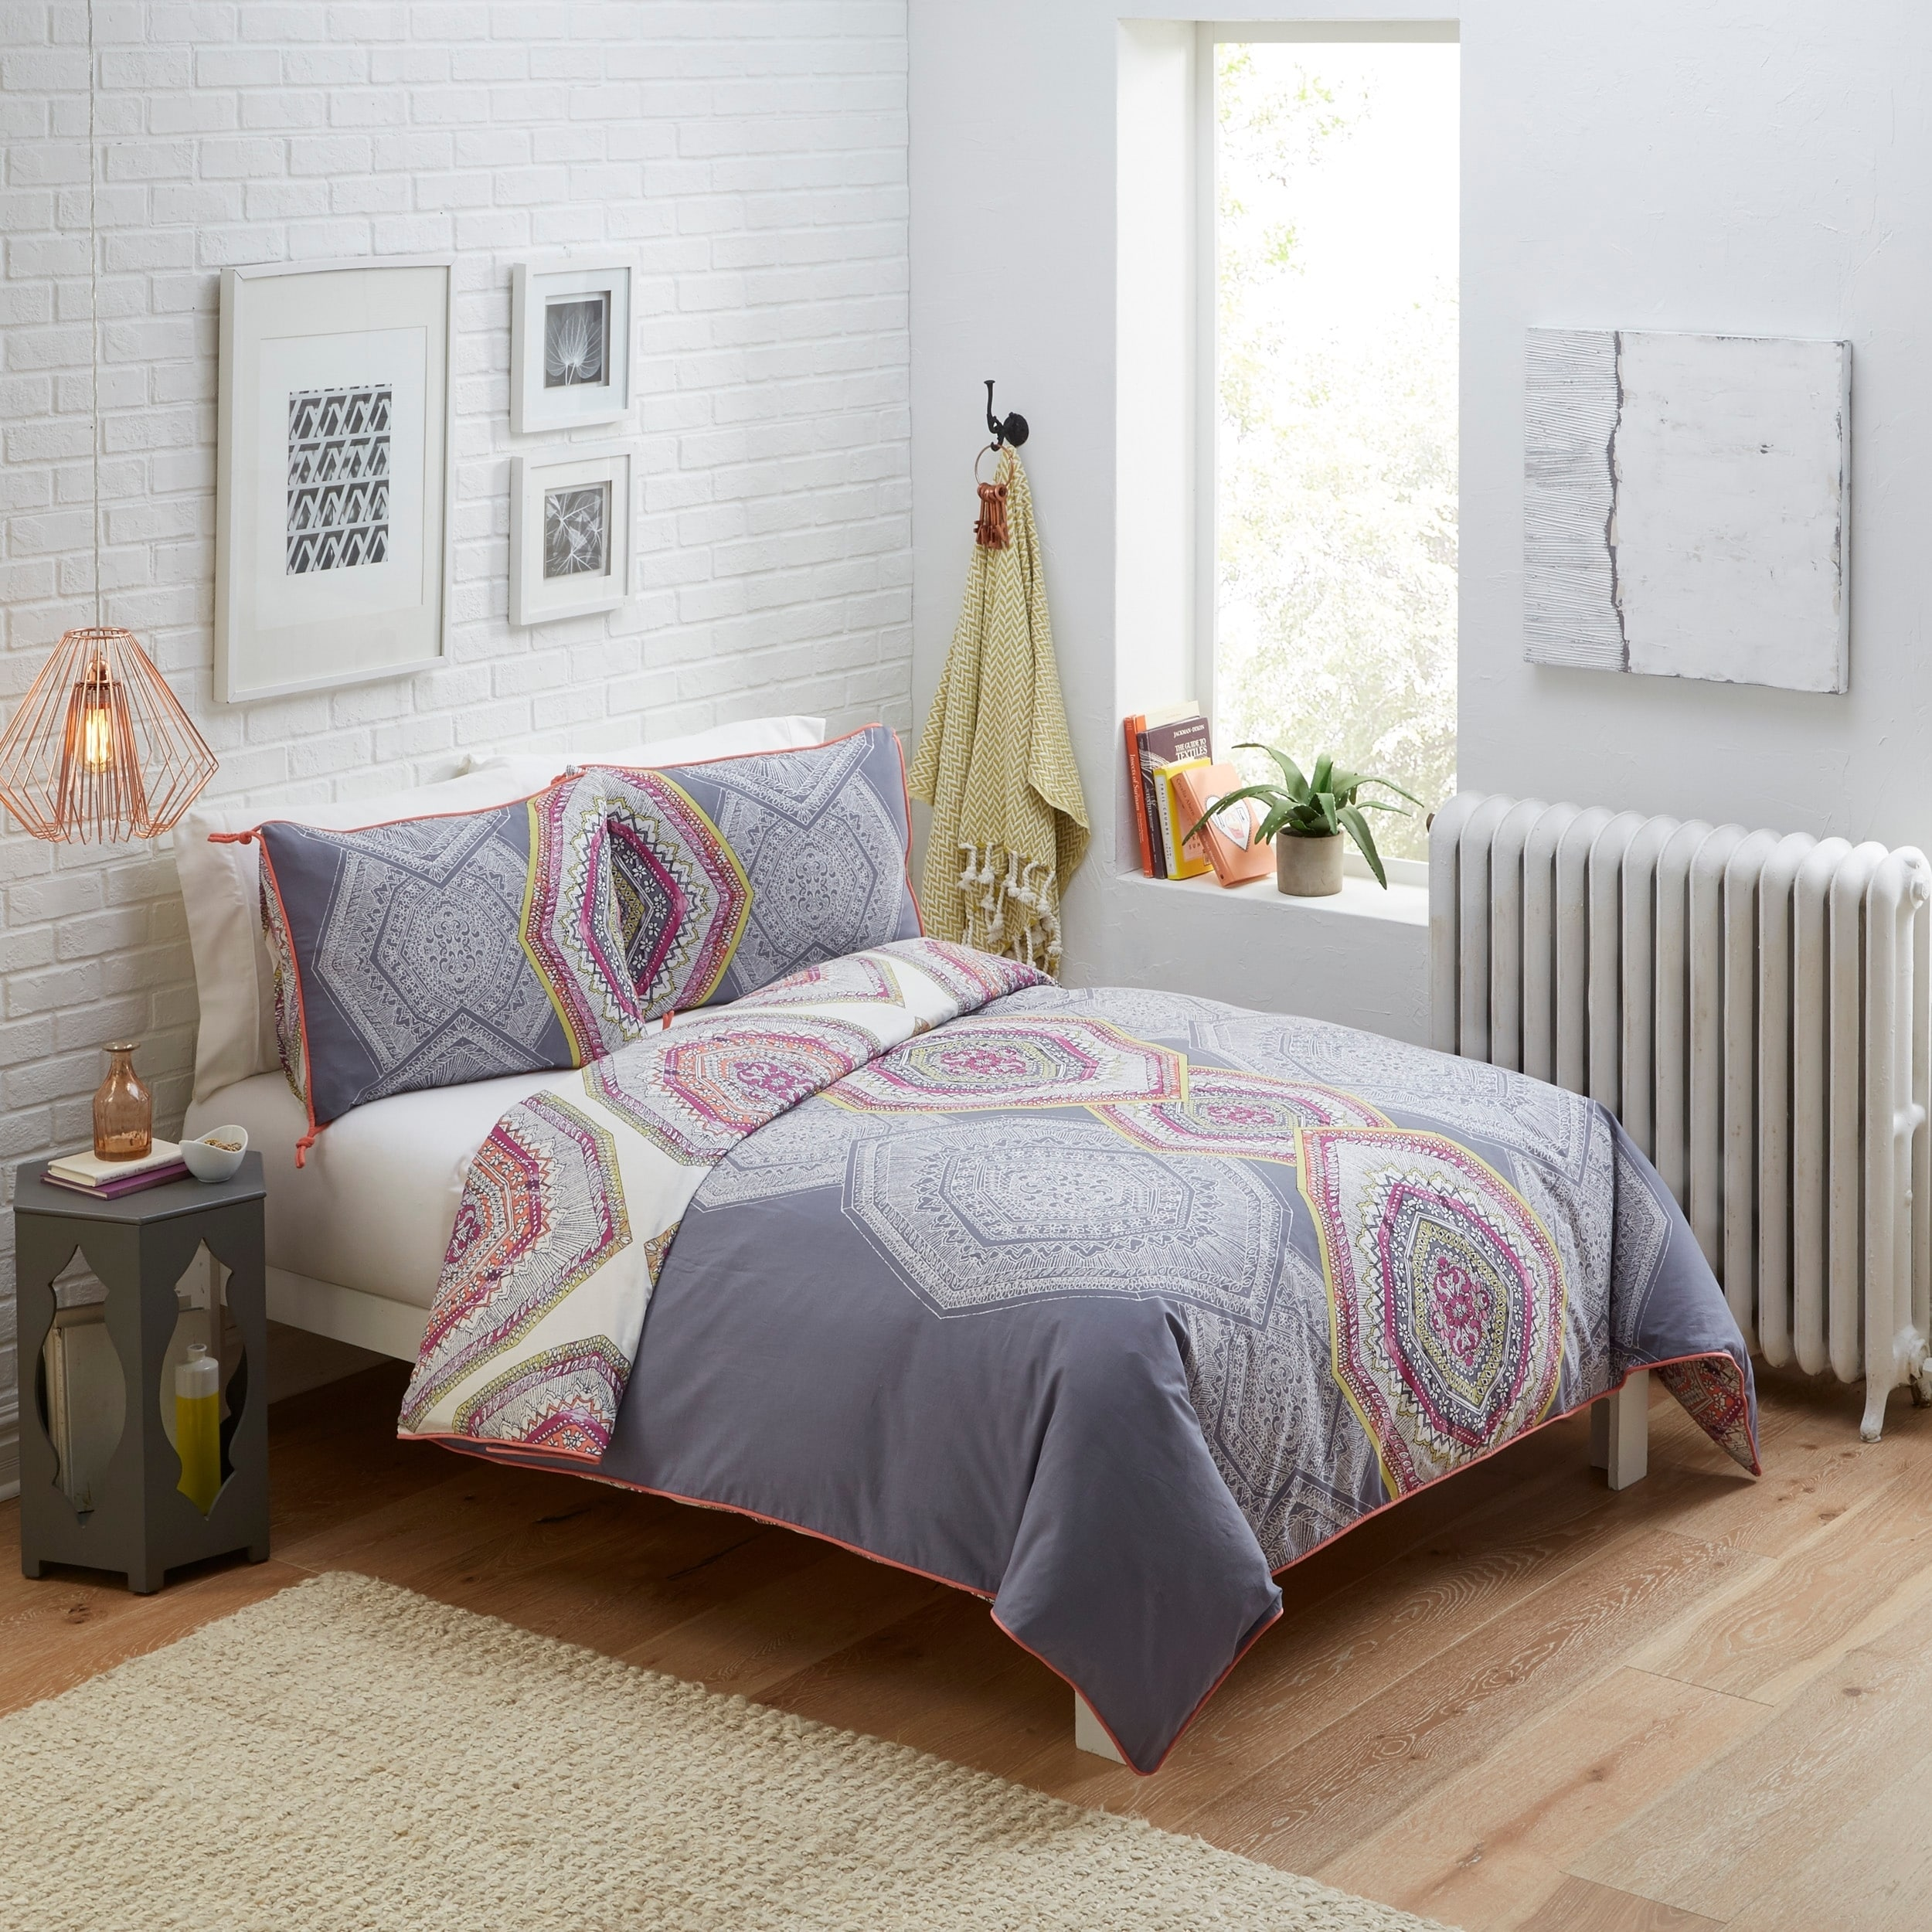 Ellery Homestyles Boho Boutique New Moon 3 Piece Reversible Comforter Set